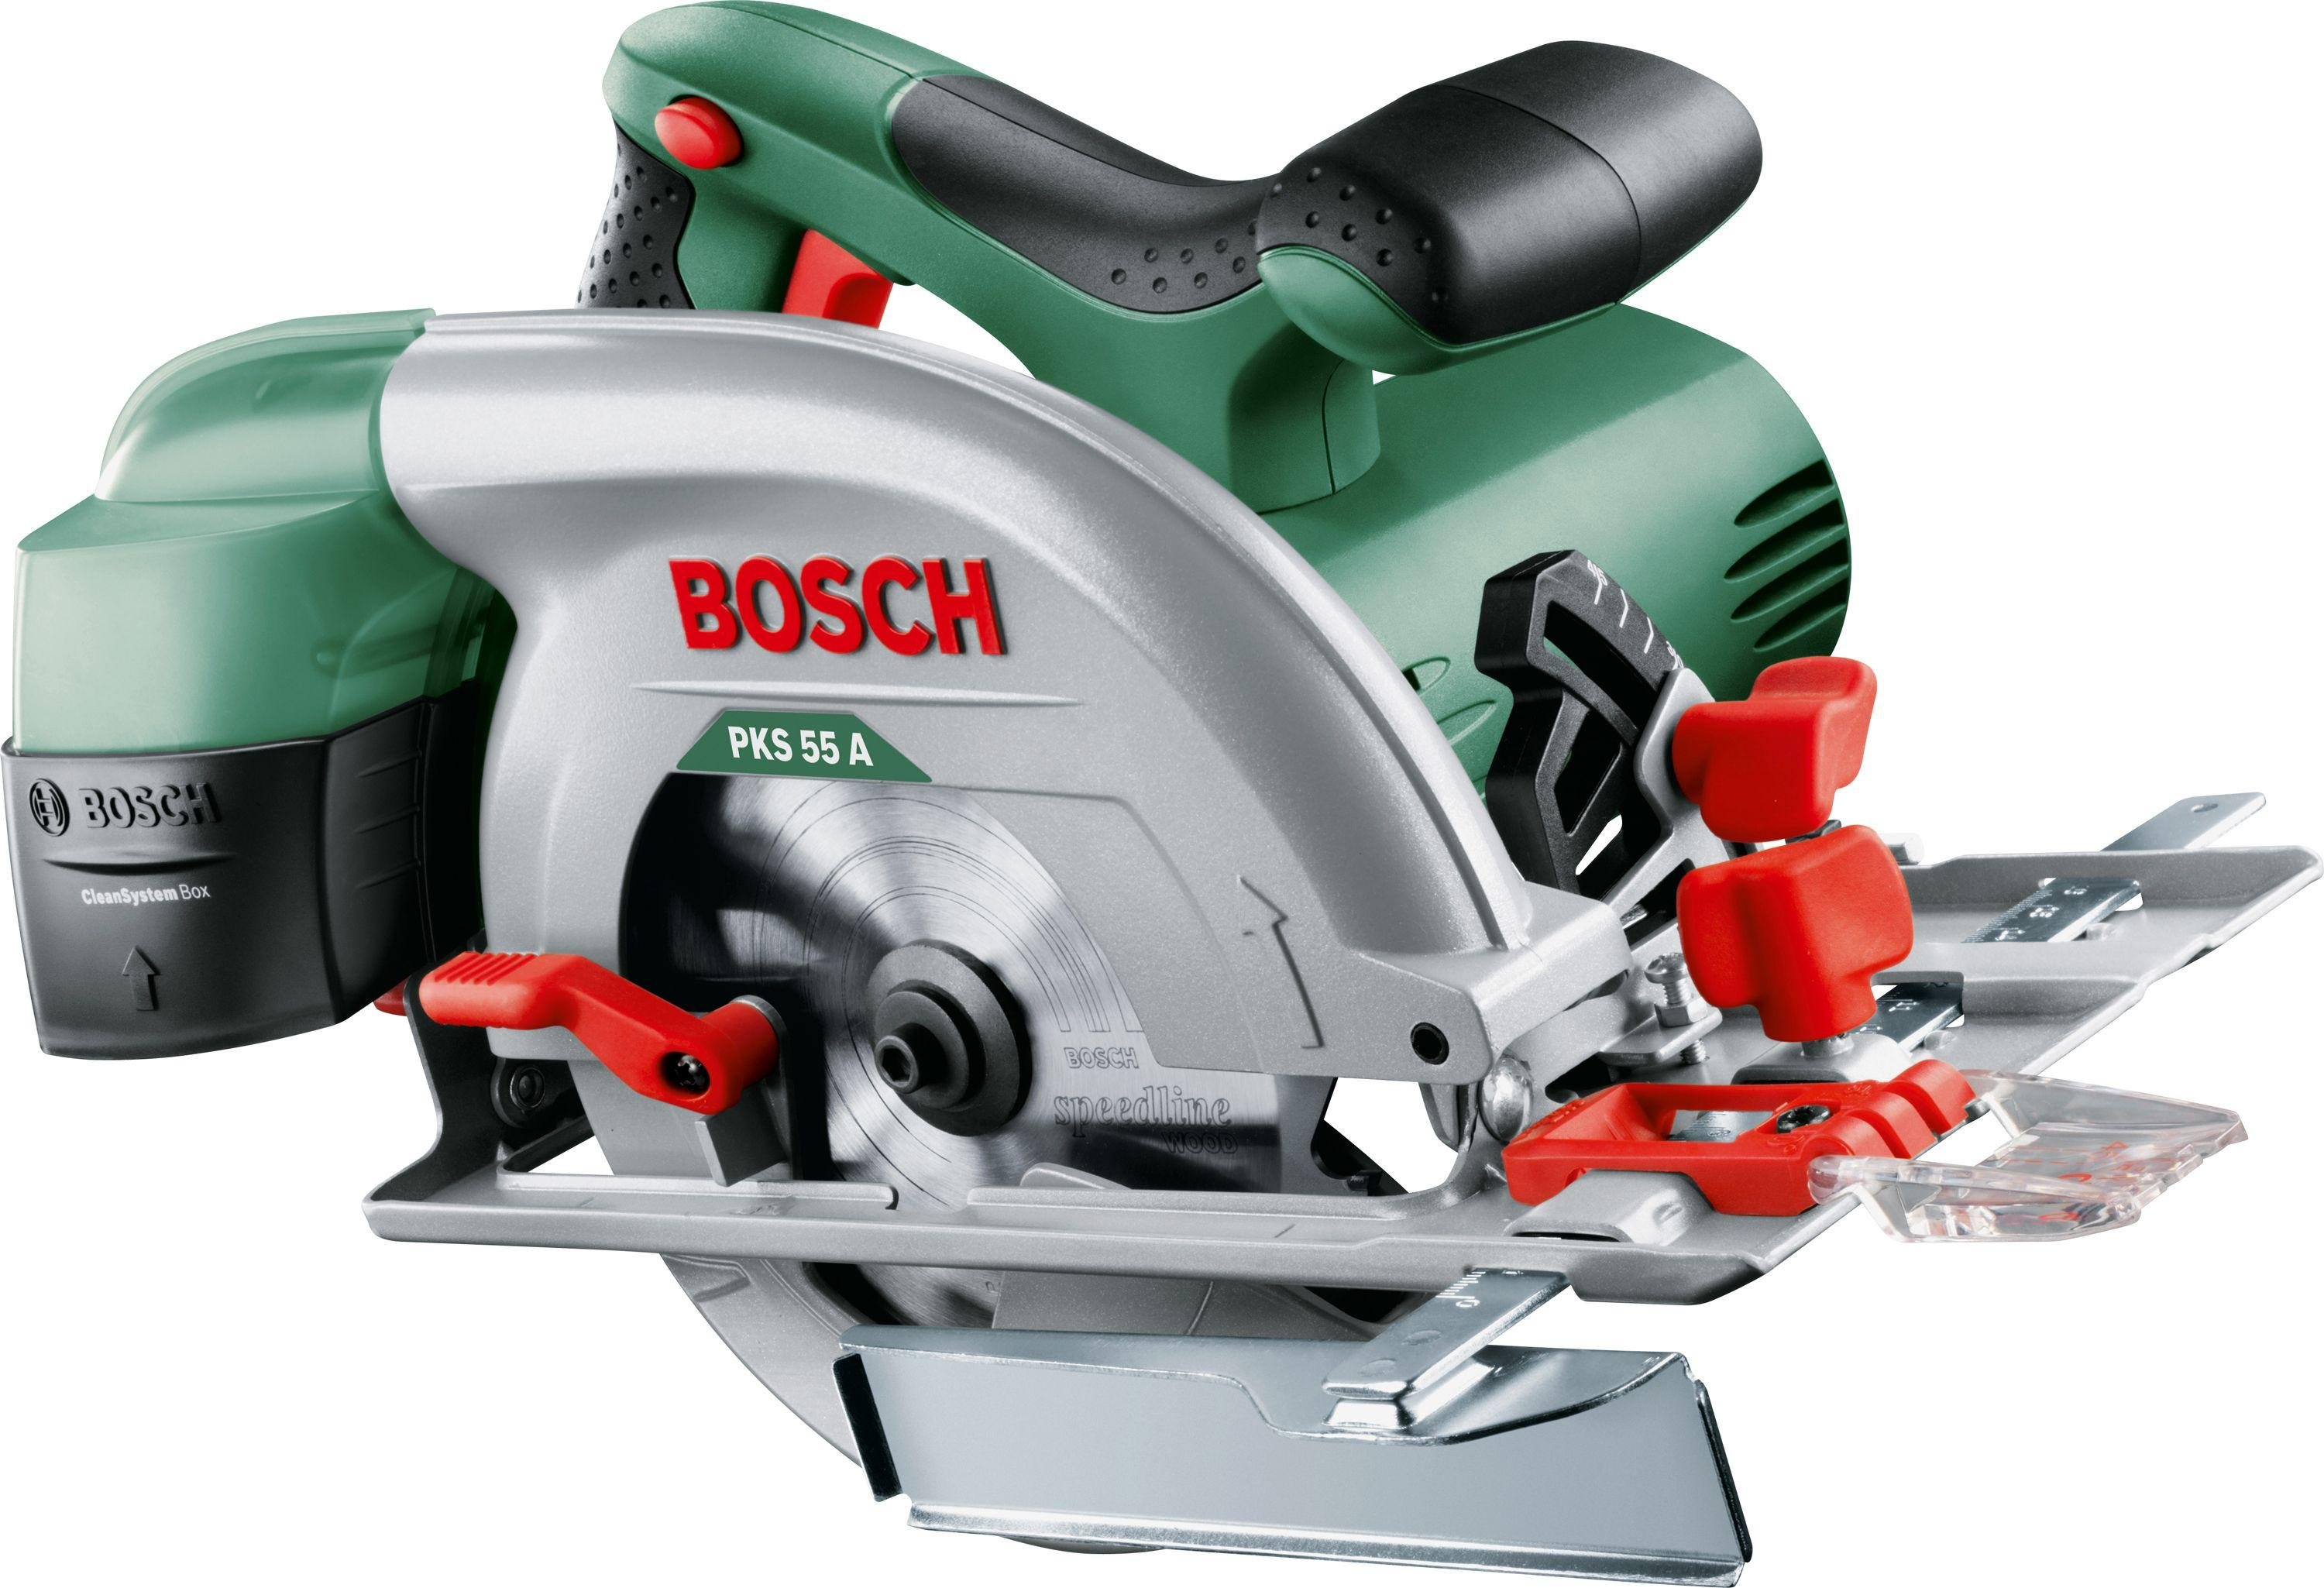 Bosch - PKS 55 Circular Saw - 1200W lowest price